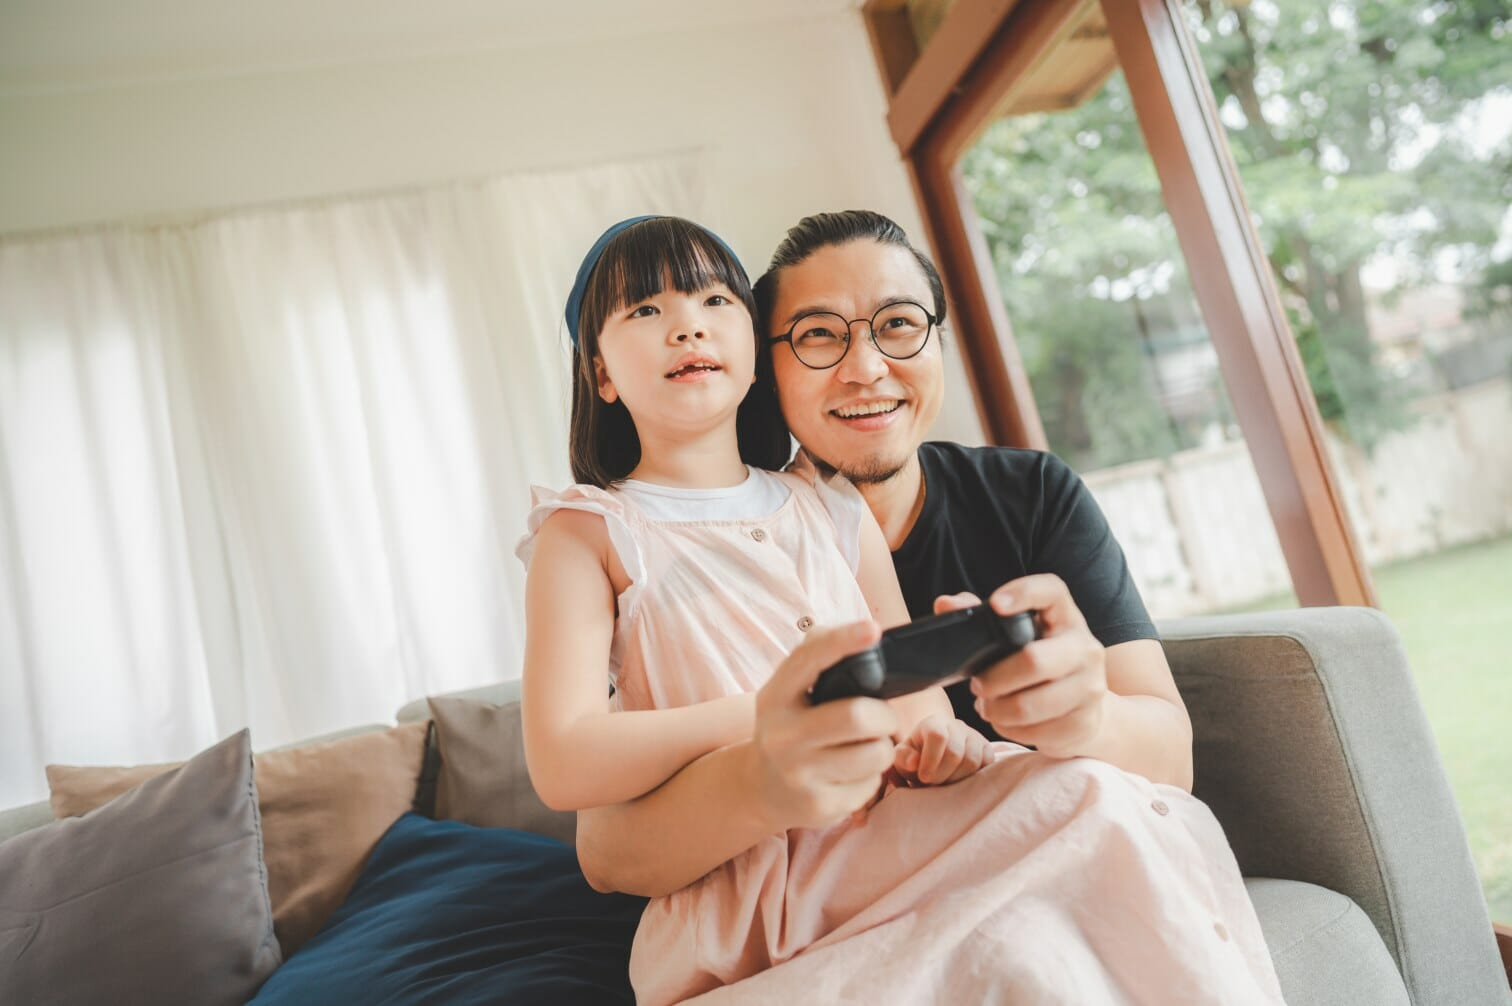 father-and-daughter-playing-video-game